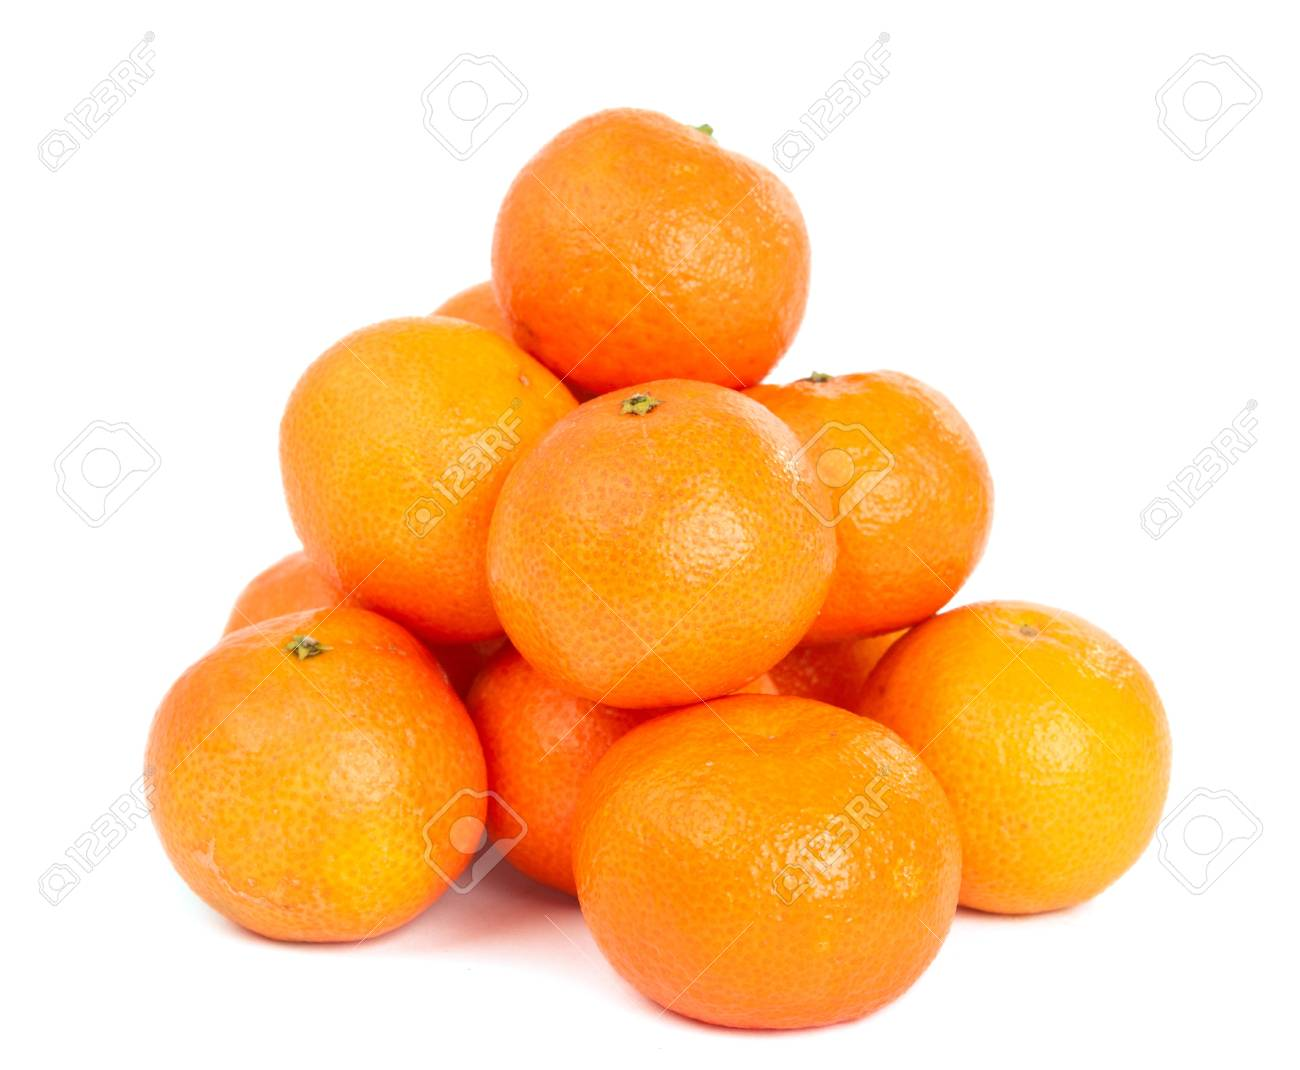 tangerine on white background Stock Photo - 11469348